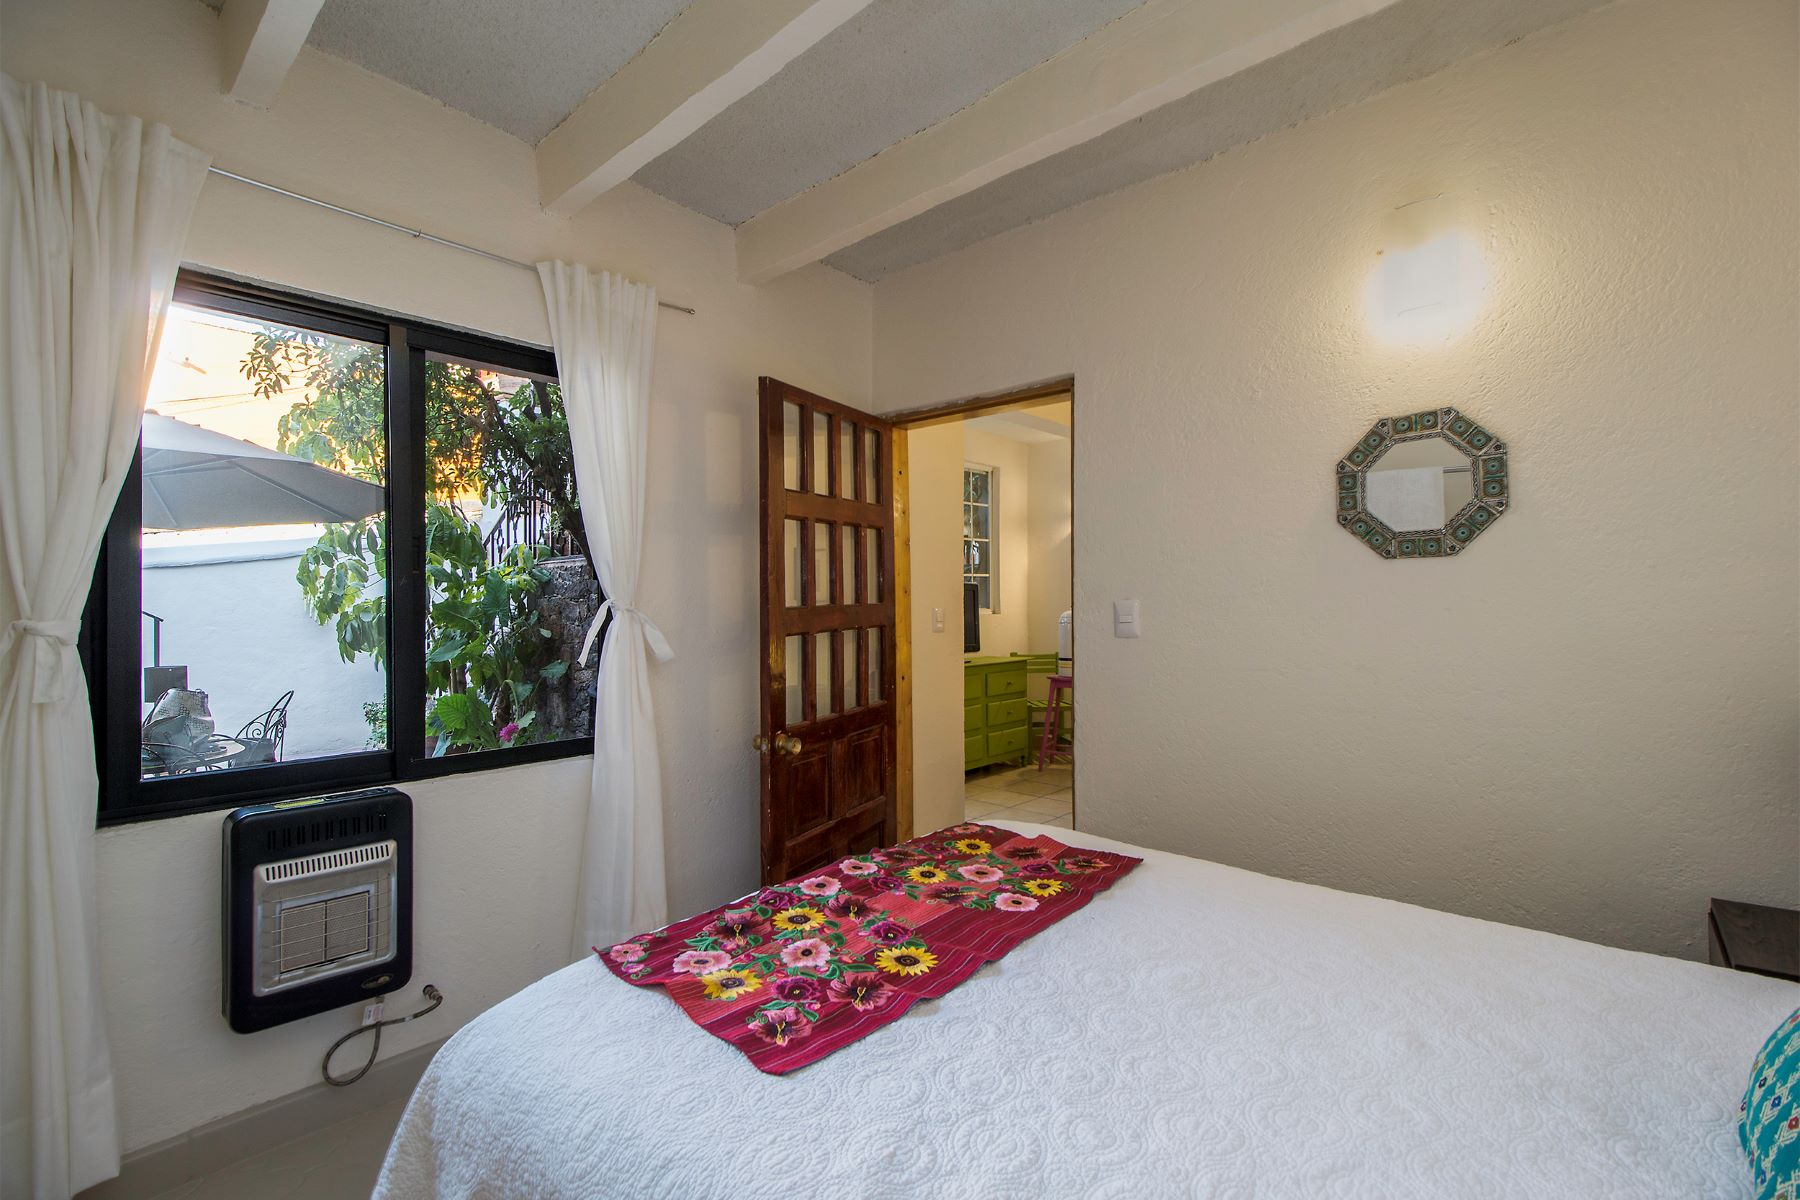 Additional photo for property listing at Casitas Aparicio Centro, San Miguel De Allende, Guanajuato Mexico